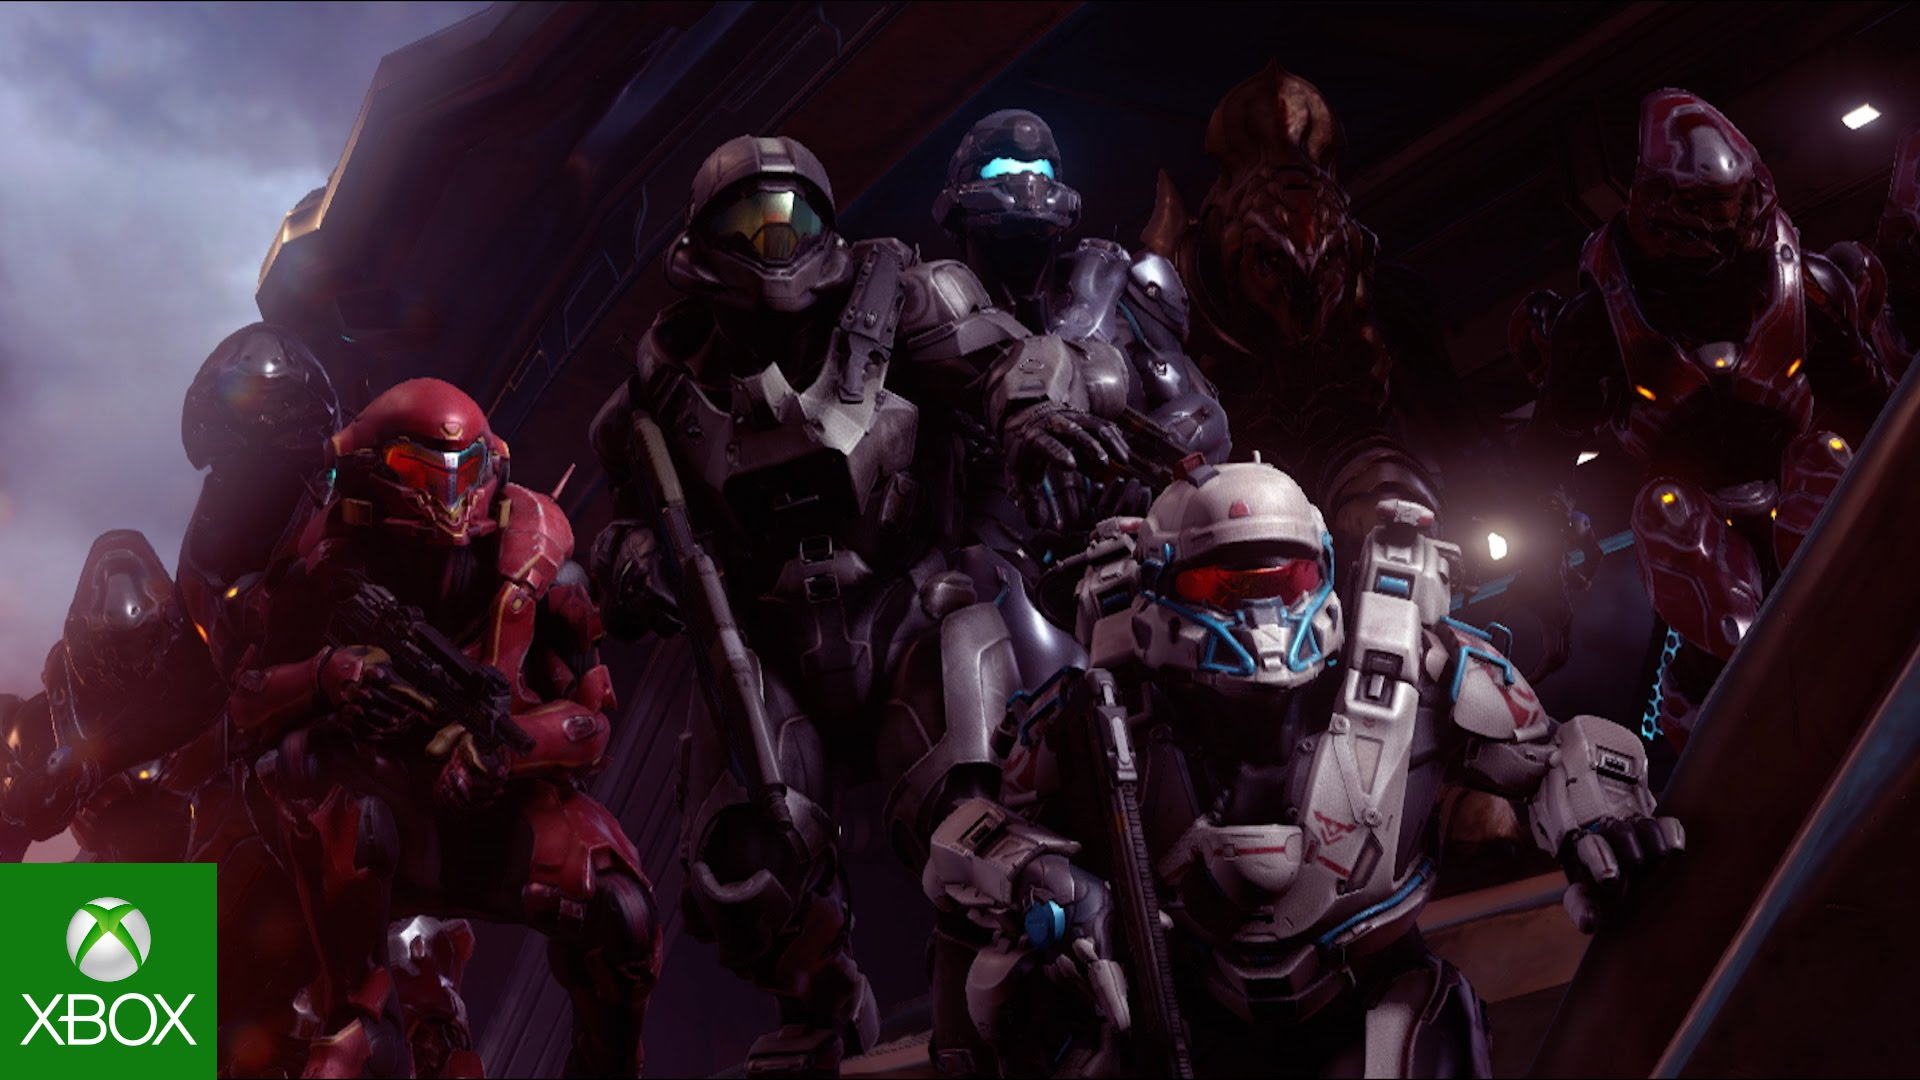 New 'Halo 5: Guardians' Trailers Showcase the Video Game's Campaign and Multiplayer